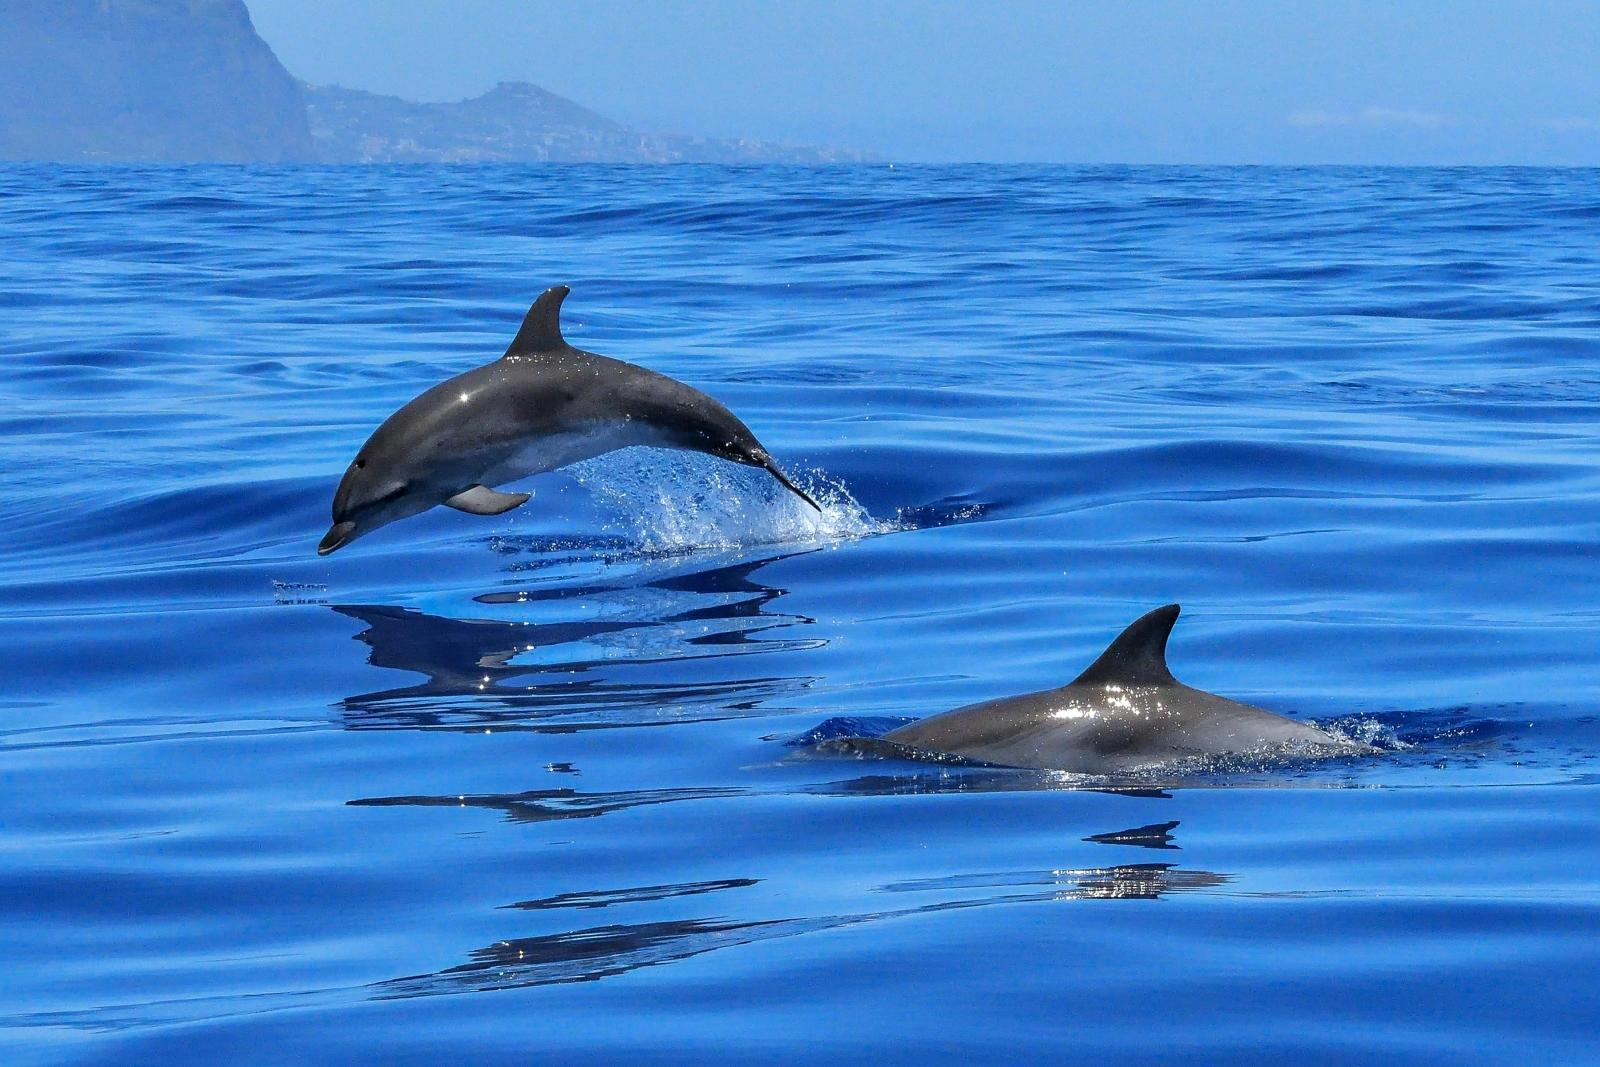 swimming with dolphins projects abroad